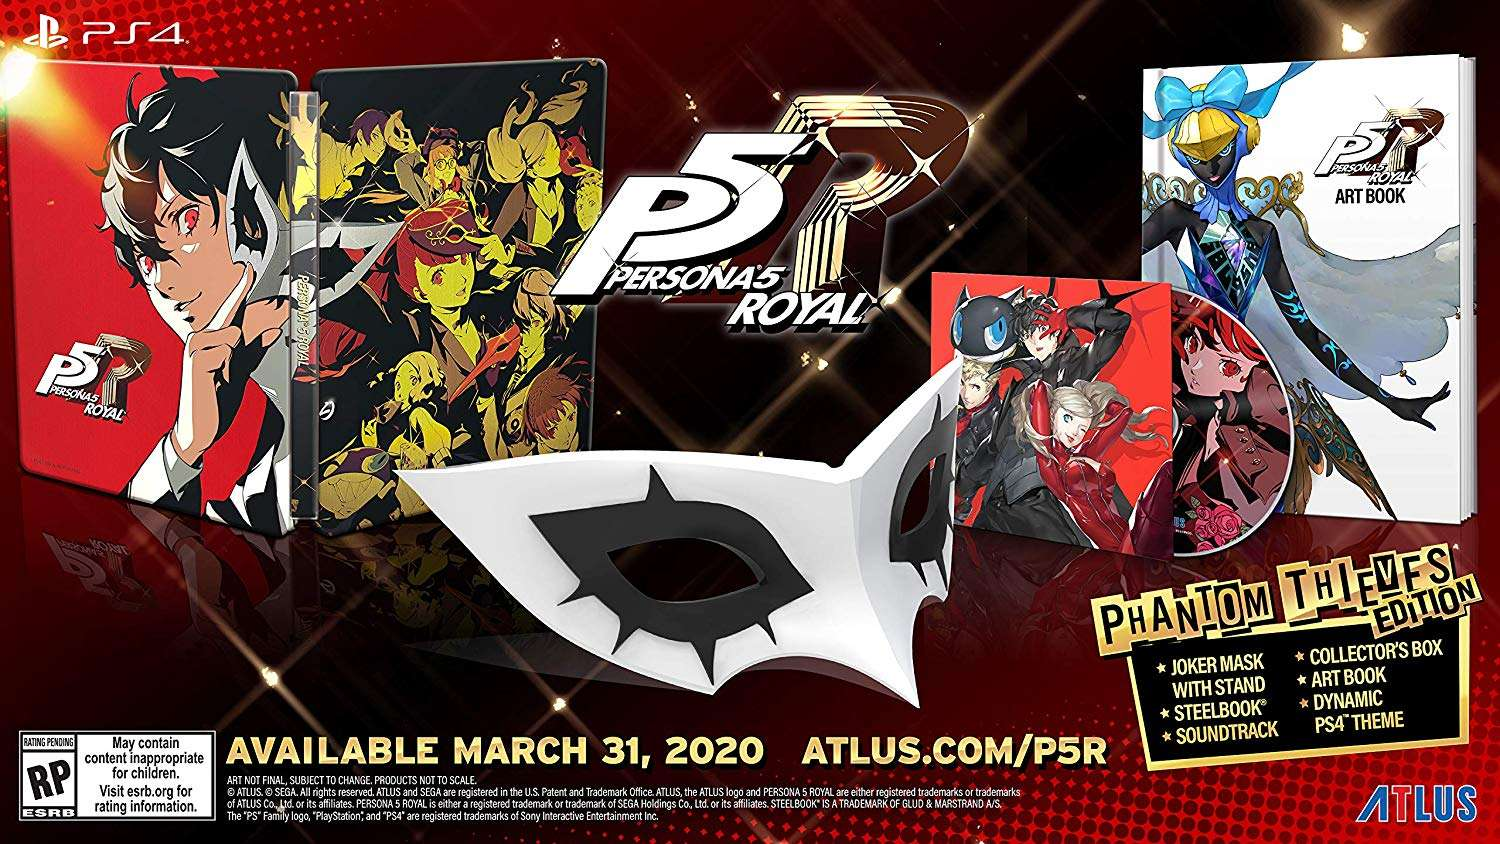 Persona 5 Royal Release Date Confirmed for March 31, 2020 in the West - Persona Central